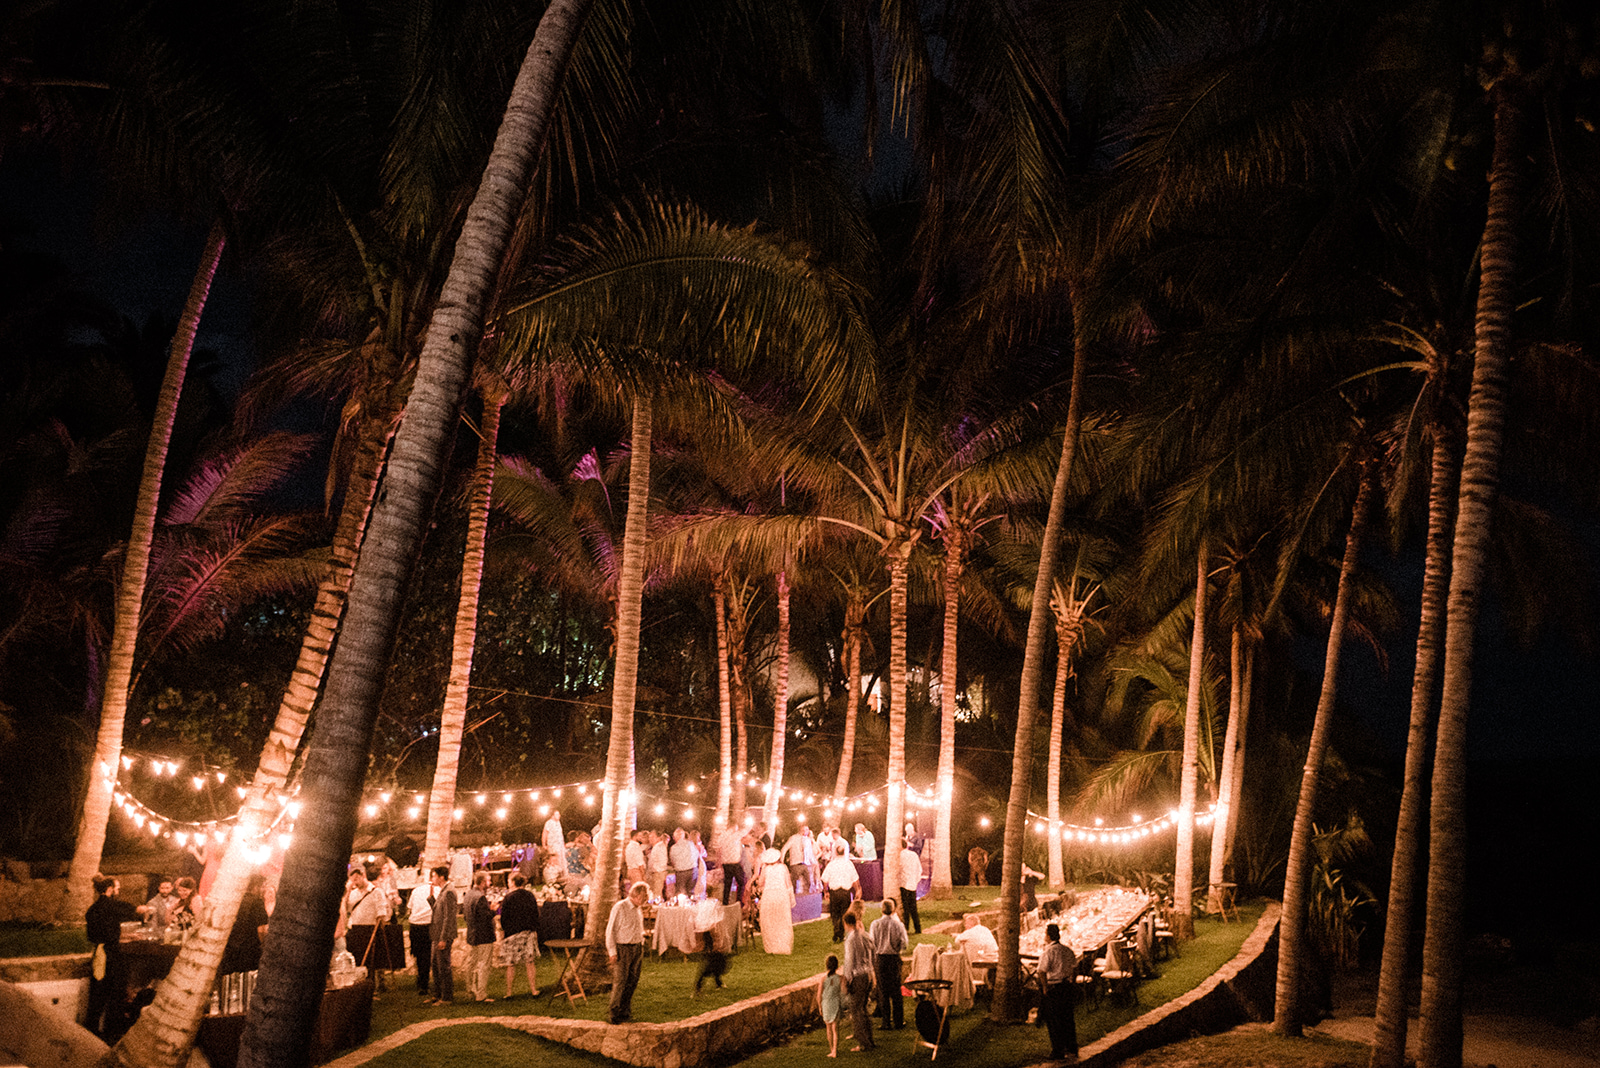 Rancho-Huracan-Wedding-Sayulita-Photographer-186_websize.jpg